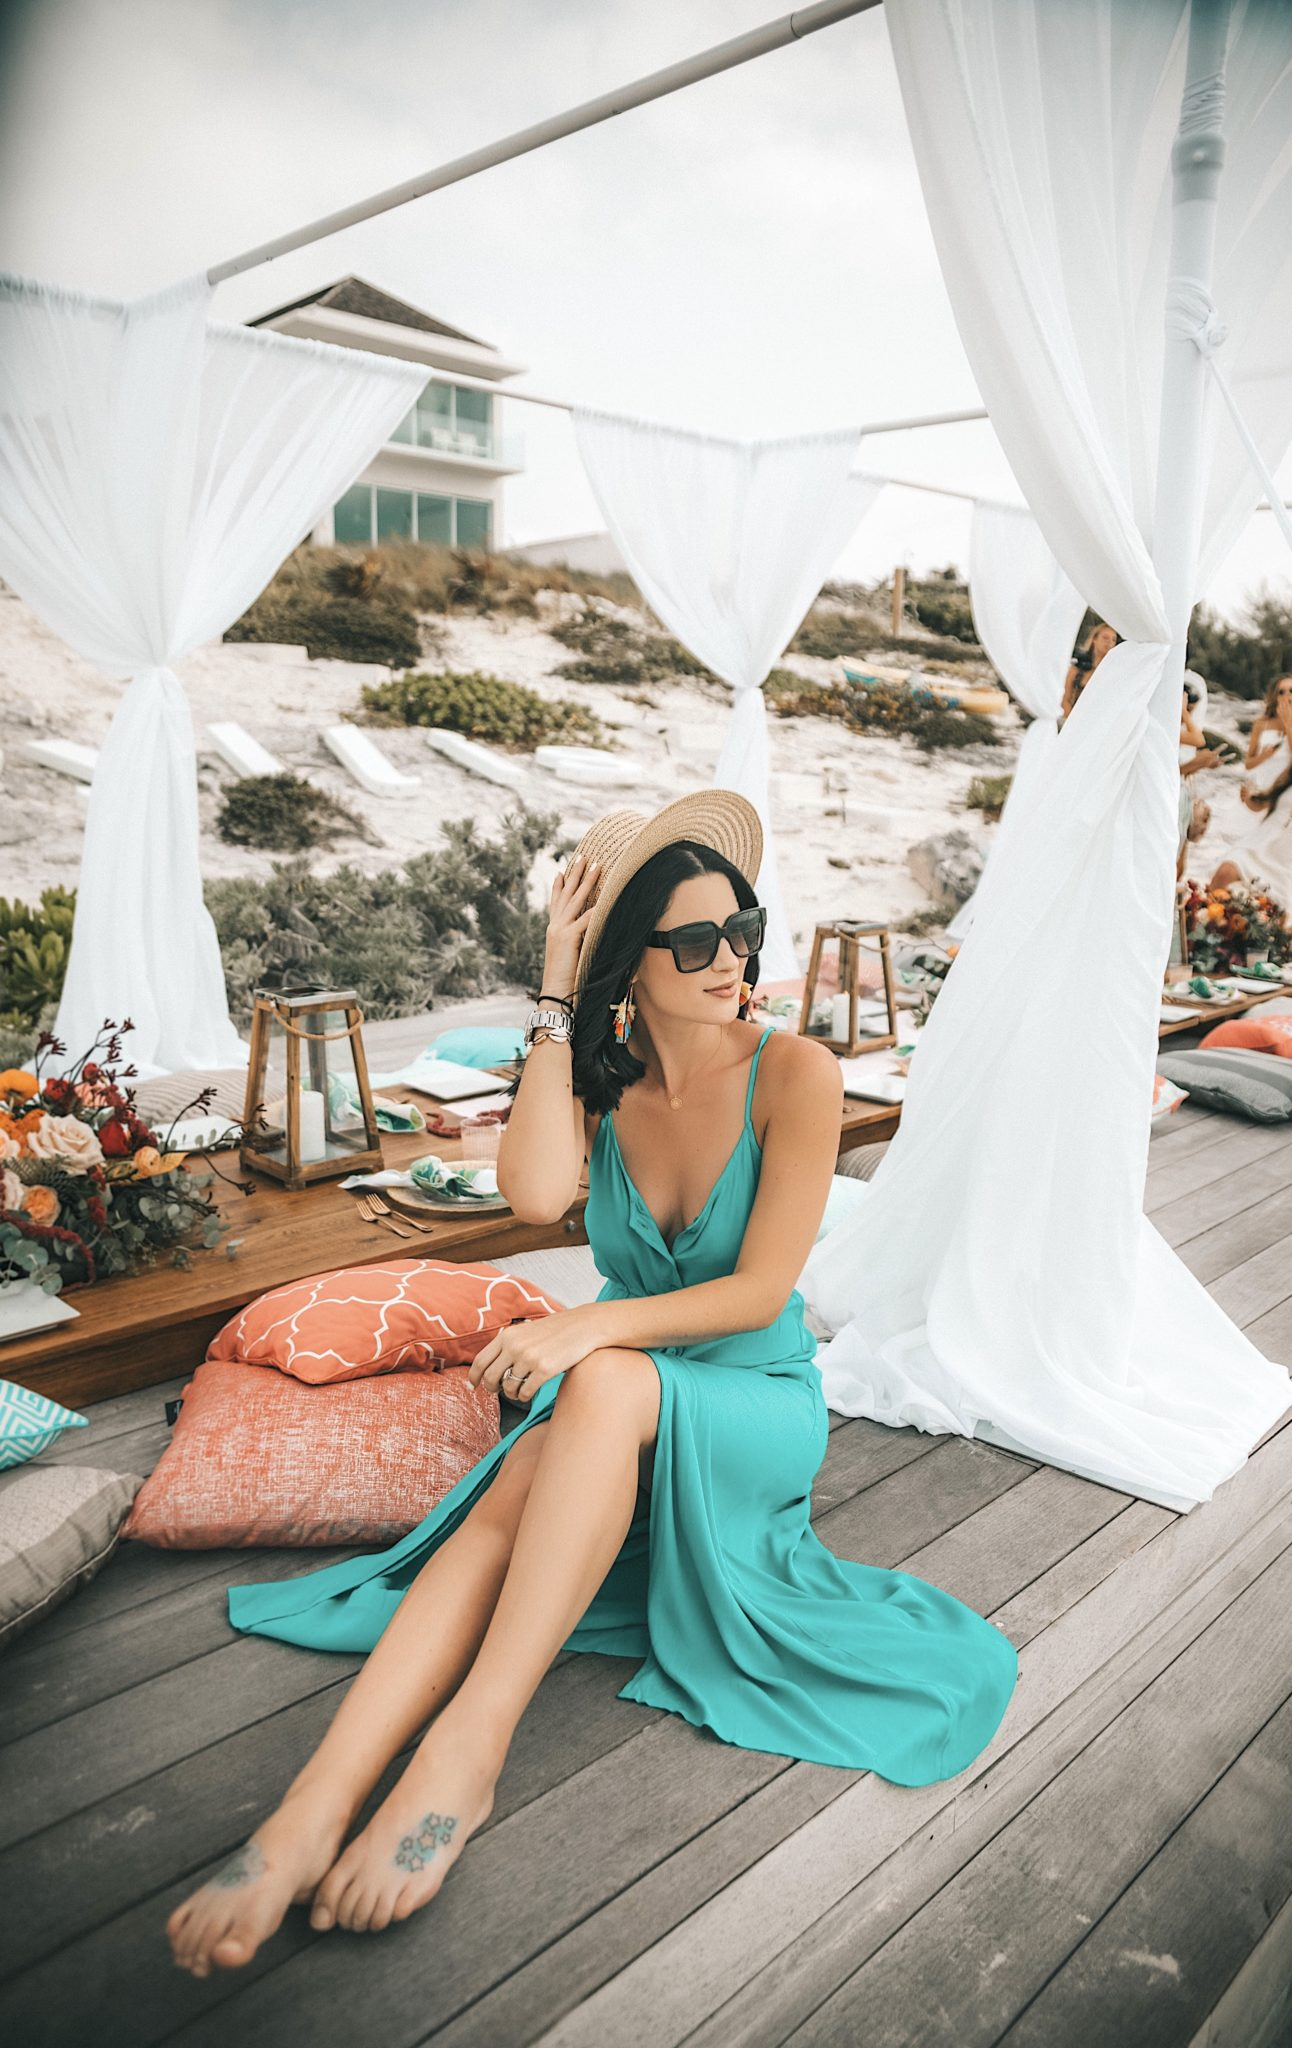 Amaryllis Apparel Abroad Turks & Caicos Summer Try-On by popular Austin fashion blog, Dressed to Kill: image of a woman sitting outside on the beach in Turks and Caicos and wearing a turquoise Amaryllis Apparel Telia button maxi dress.